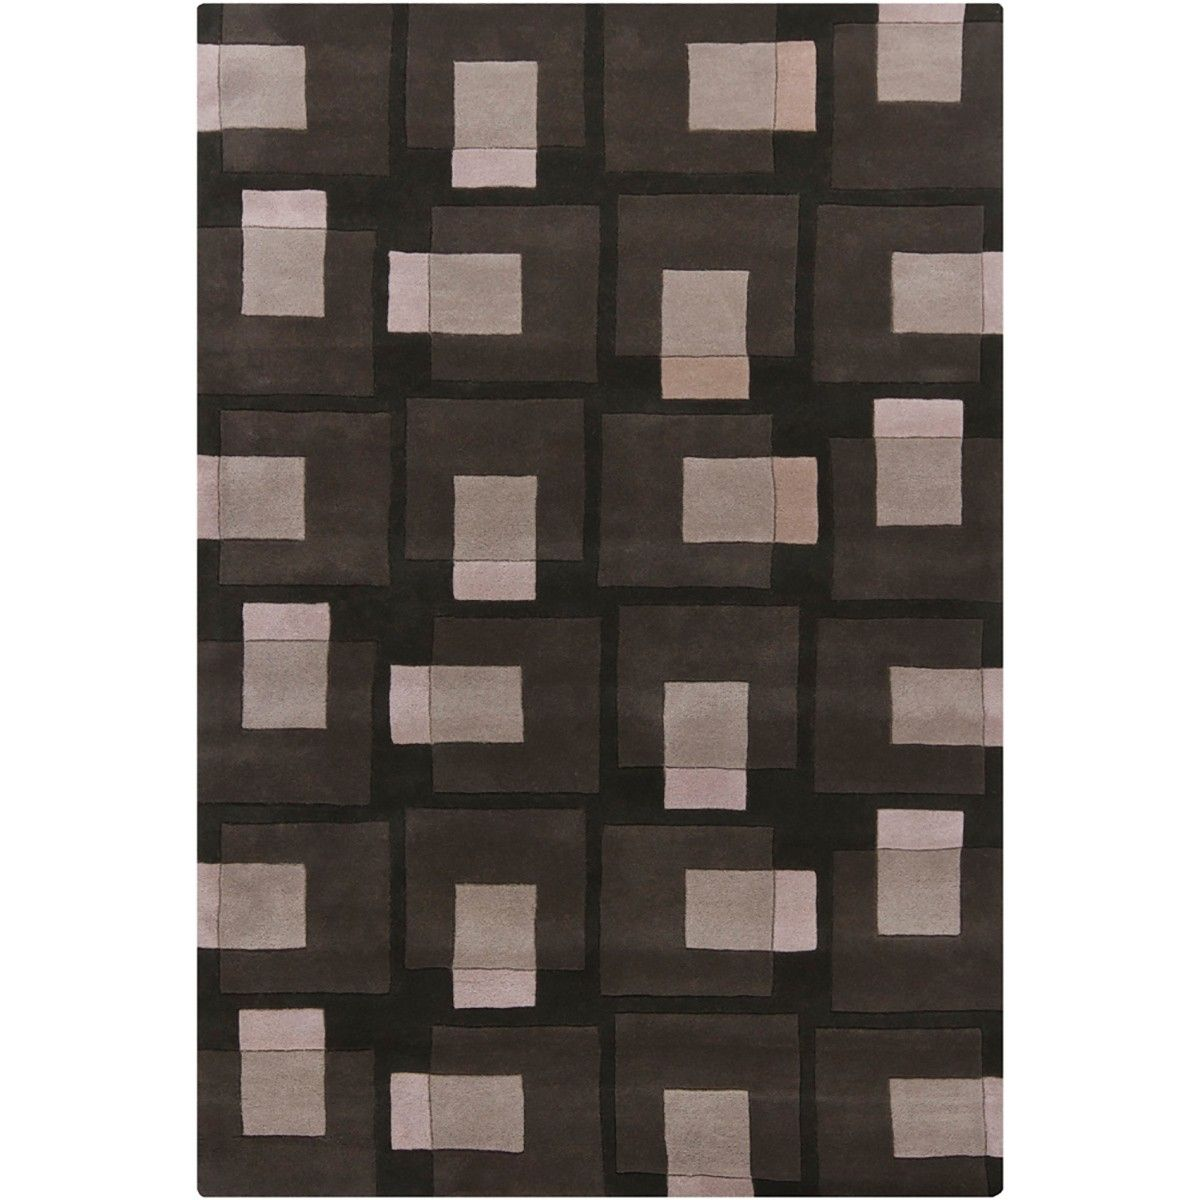 Halston Rug in Black  /  Gray  /  Ivory